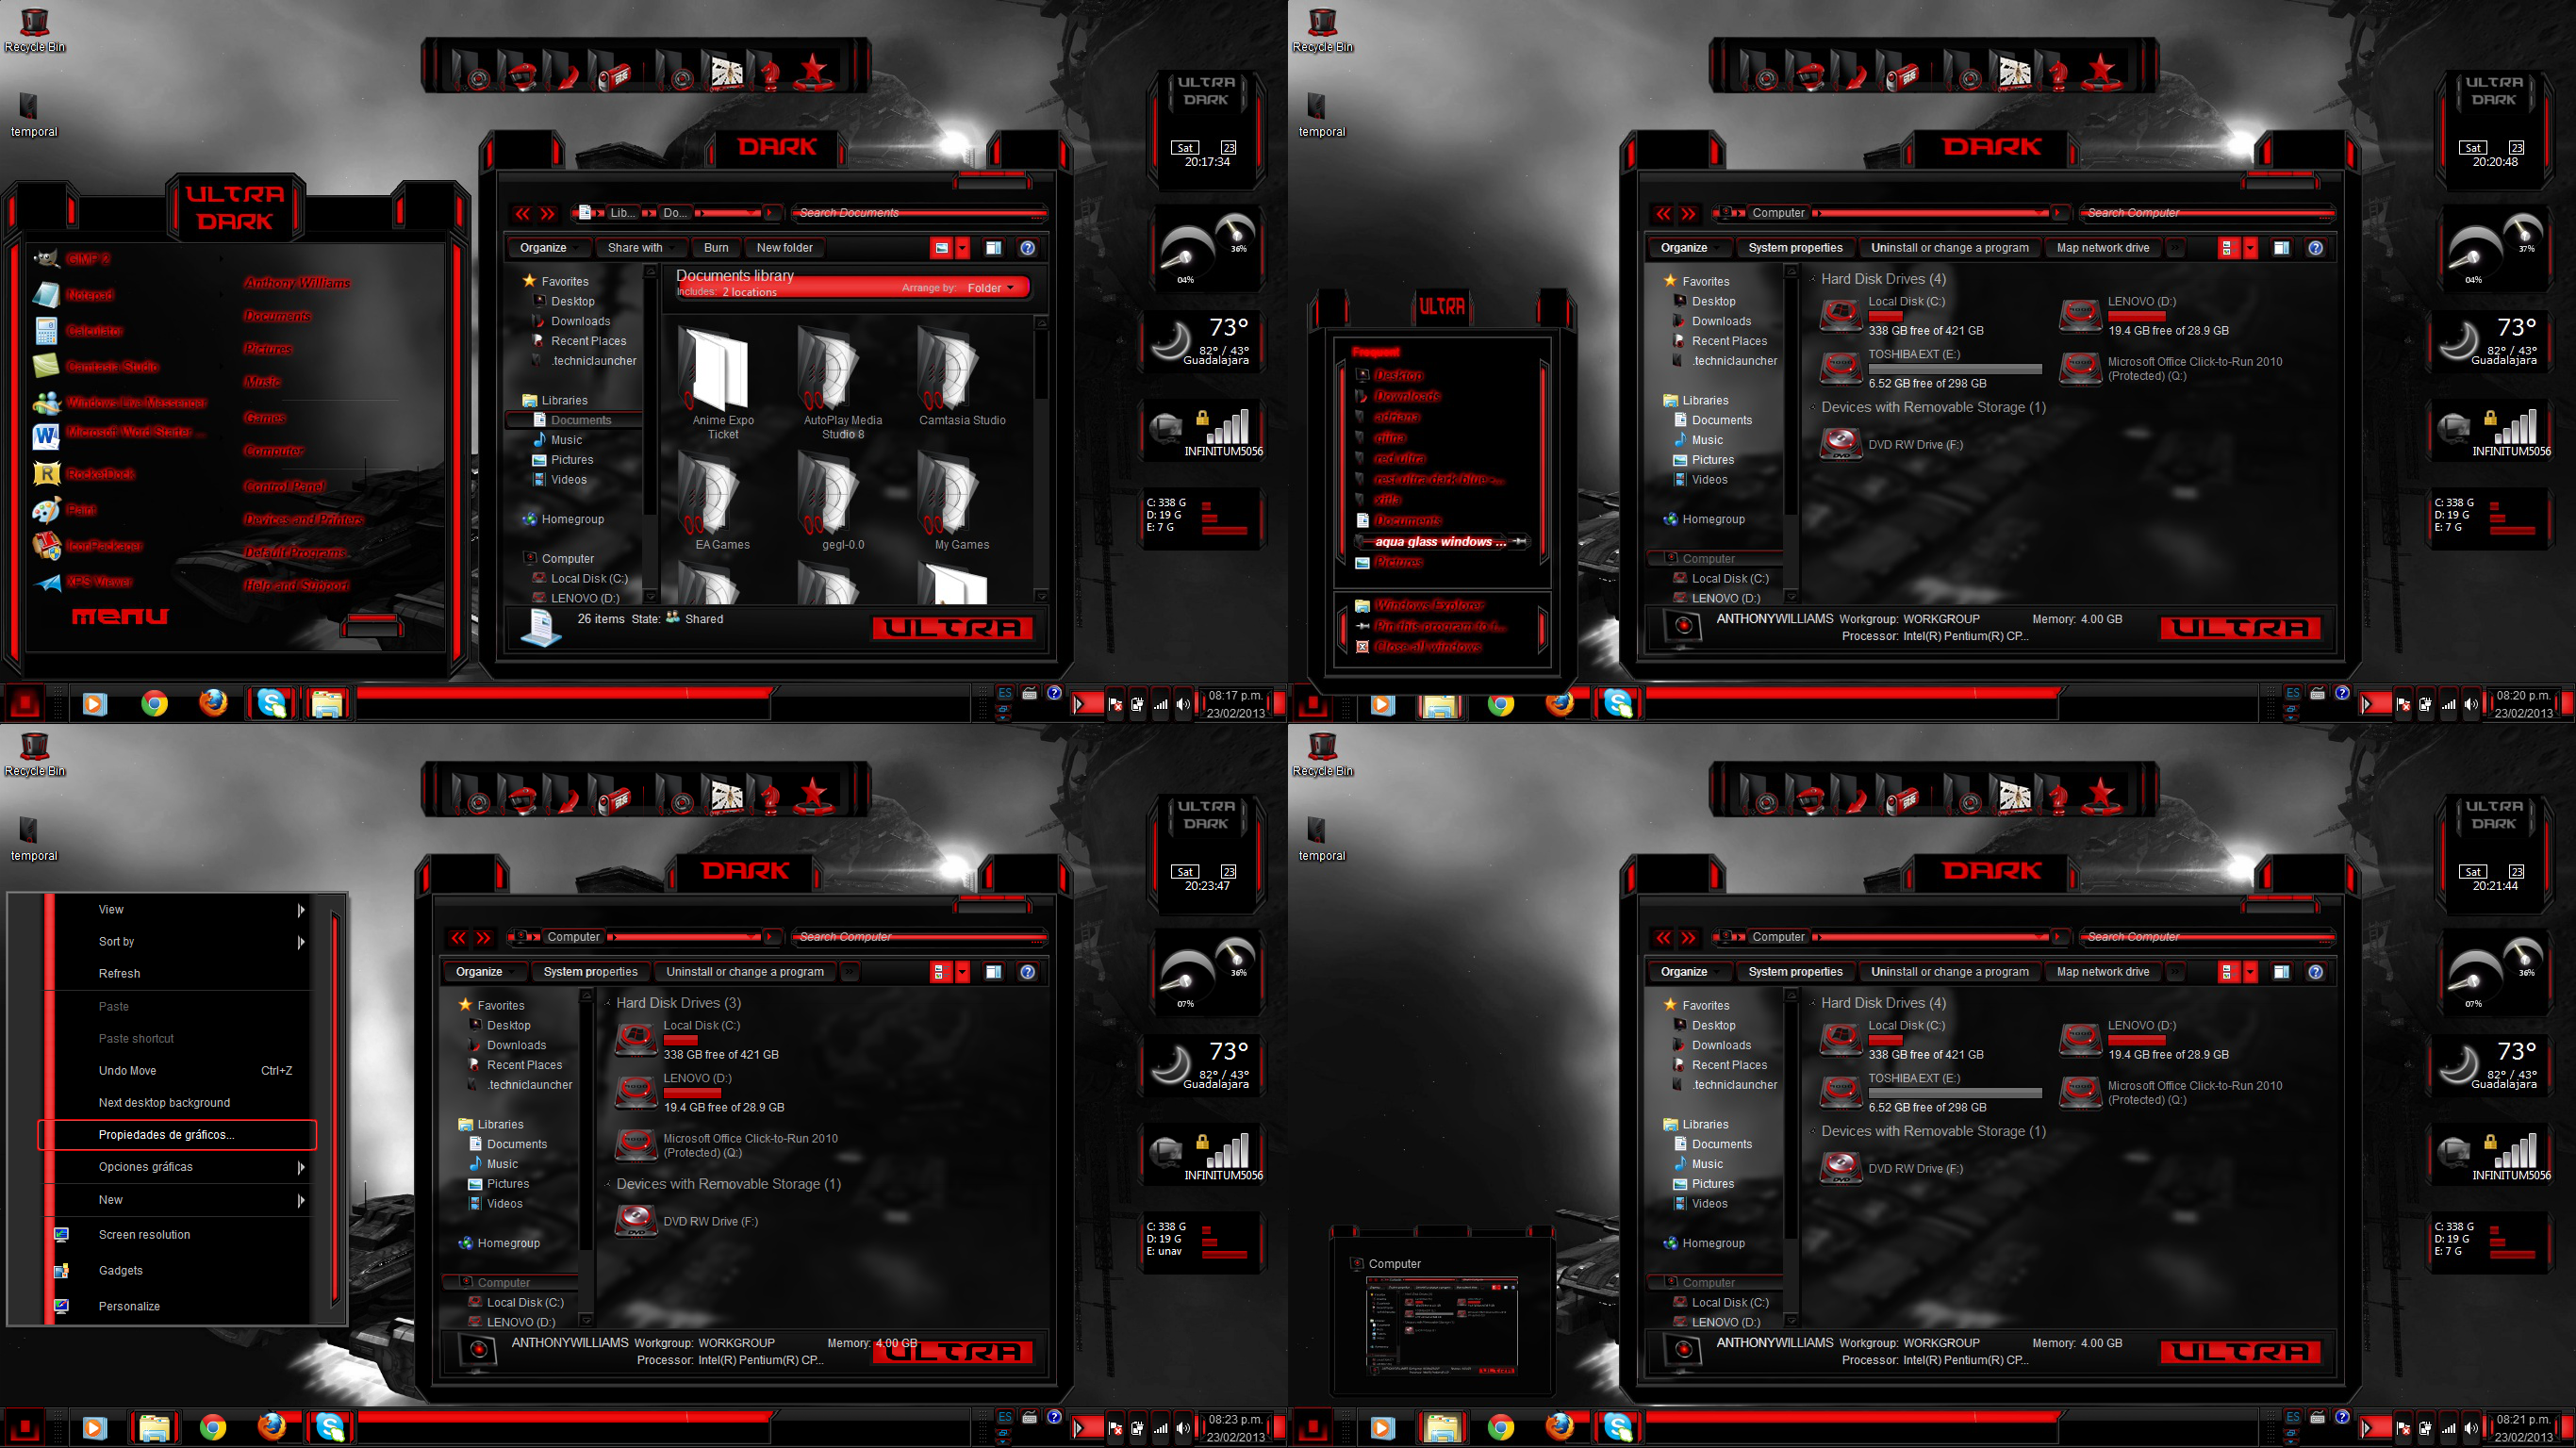 Download new blue windows 7 themes visual style cool.